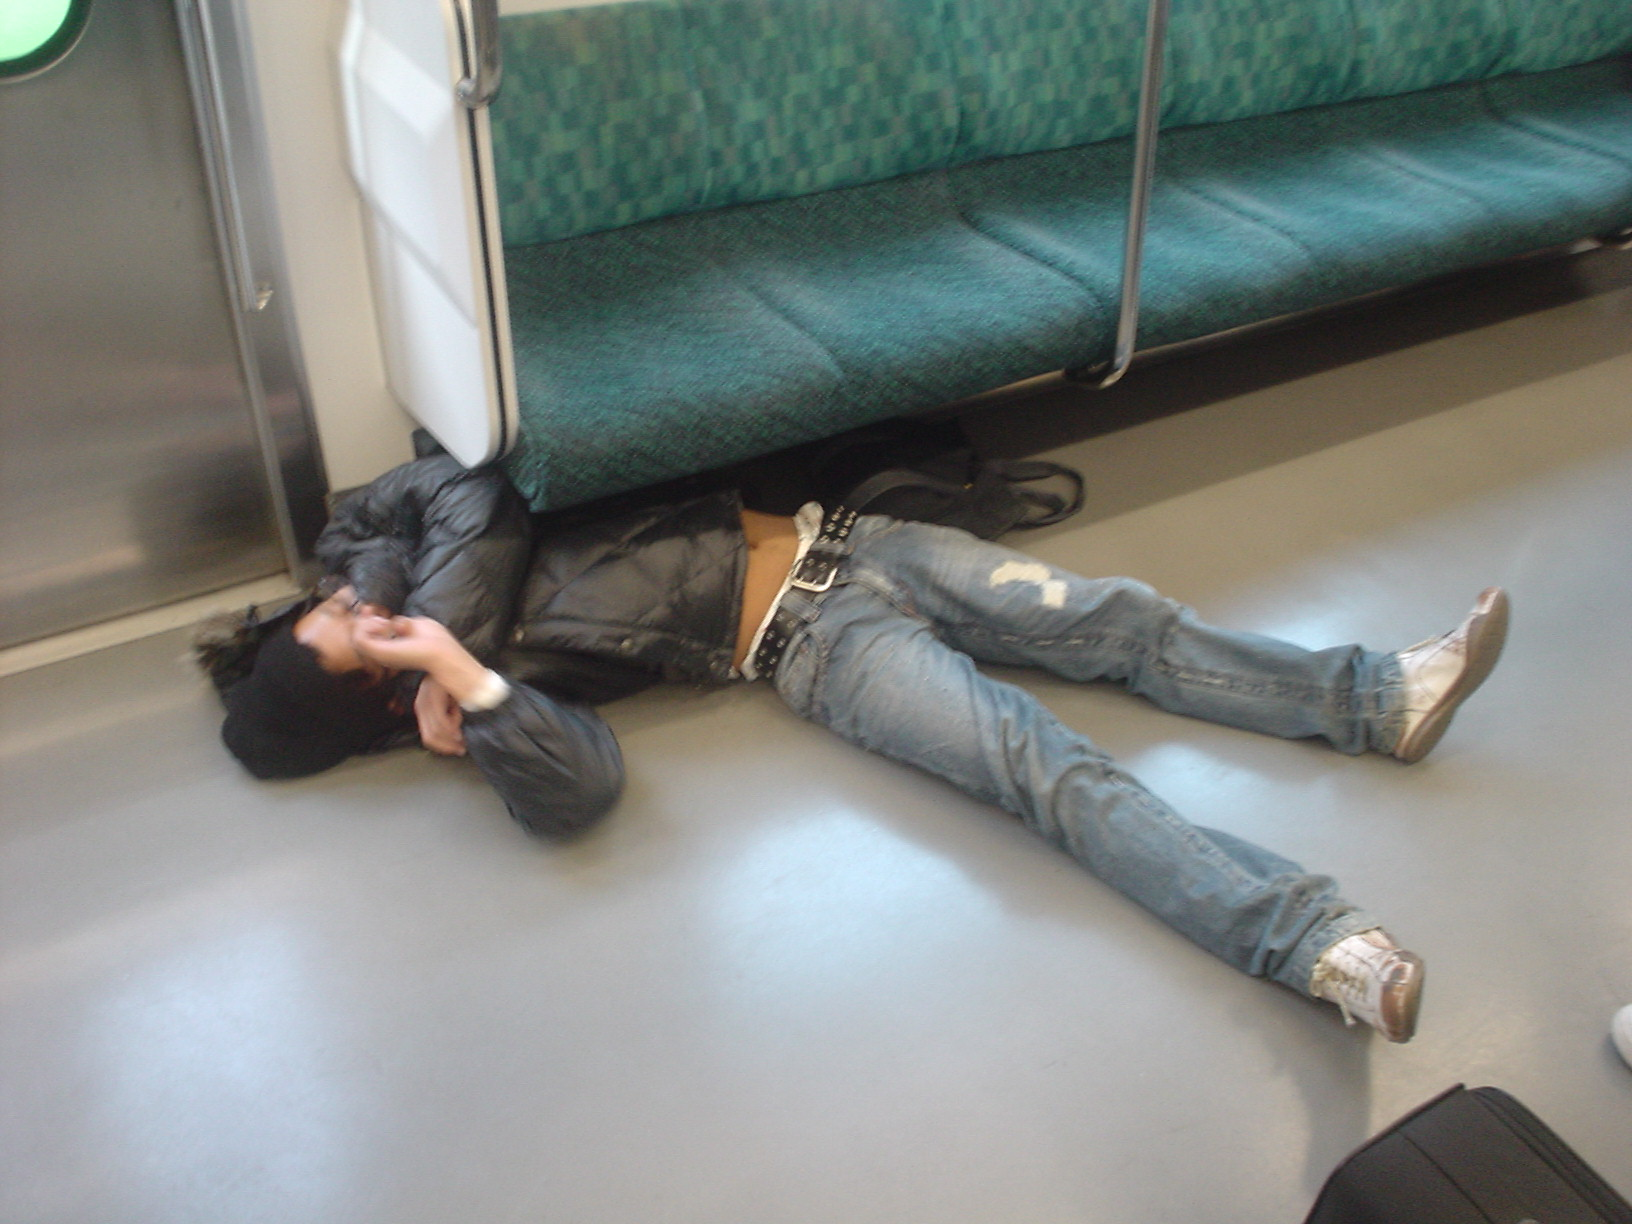 Drunk japanese girl on the train